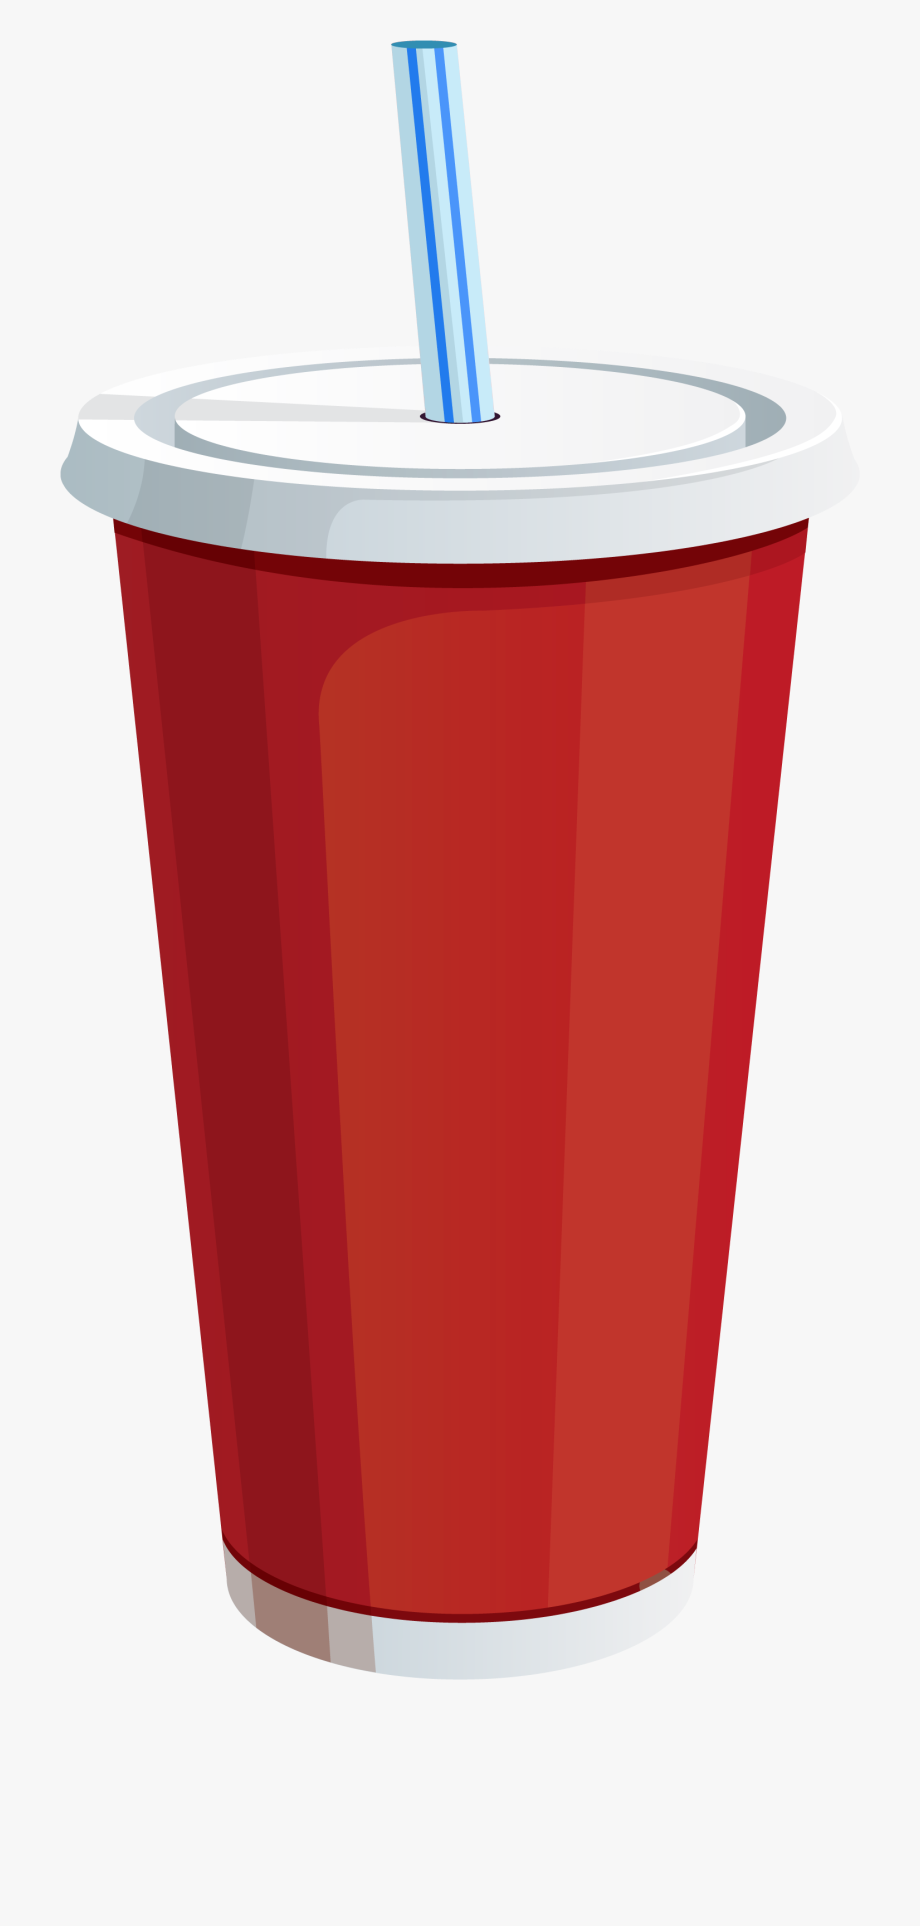 Cup Clip Art Free Stock Huge.